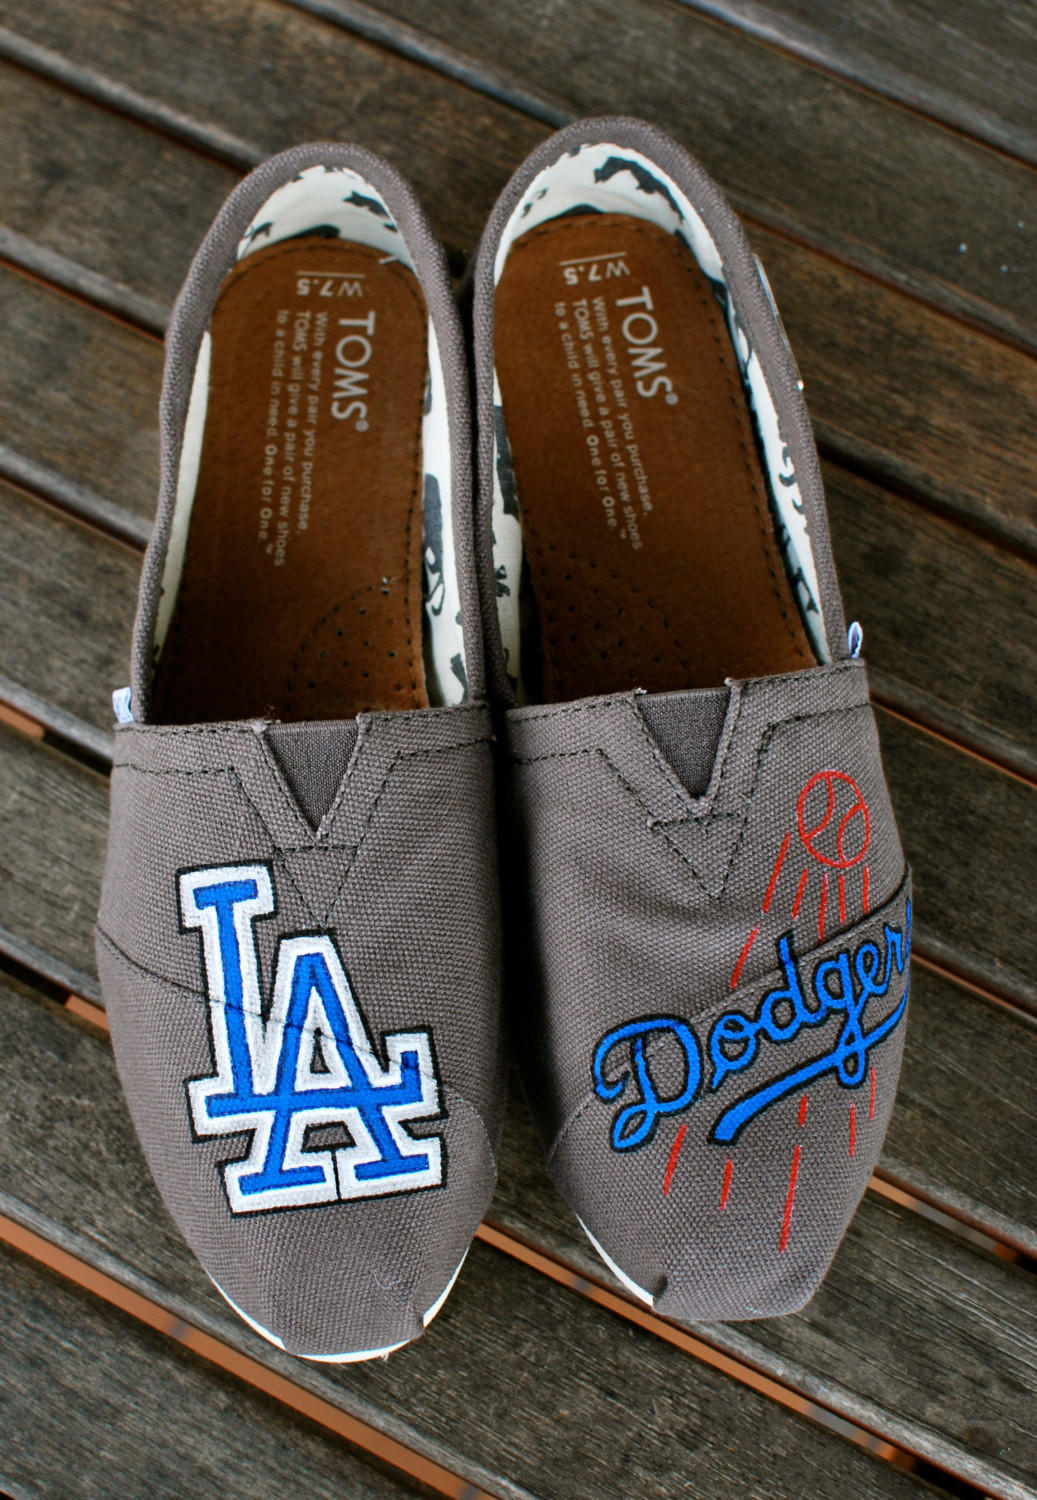 La Dodgers Toms Shoes From Bstreetshoes